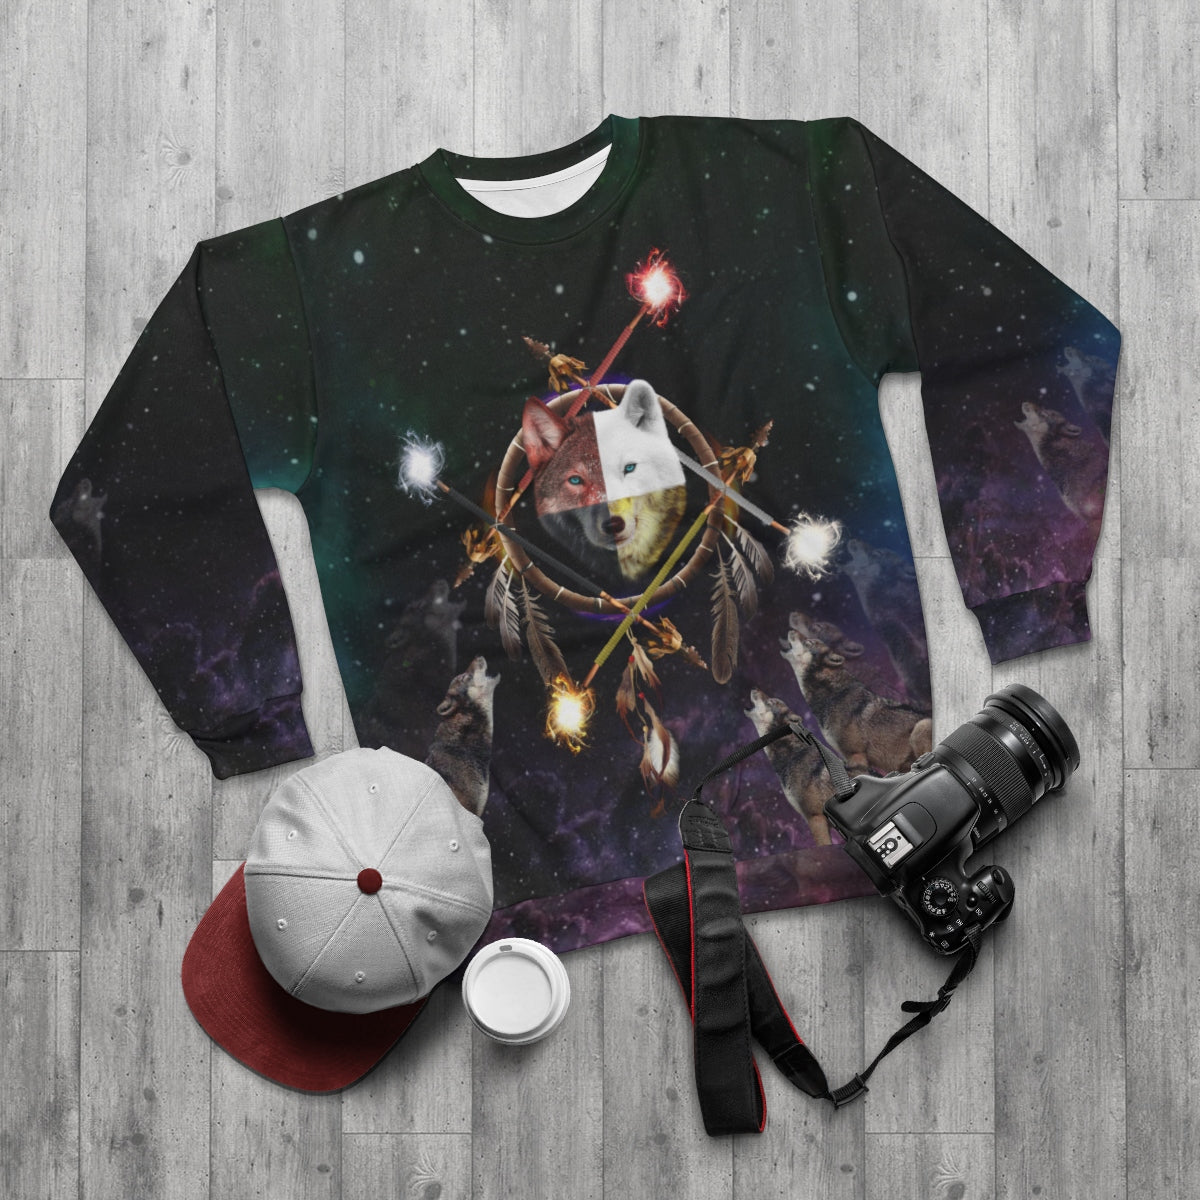 4 Ages Color All Over Print Sweatshirt